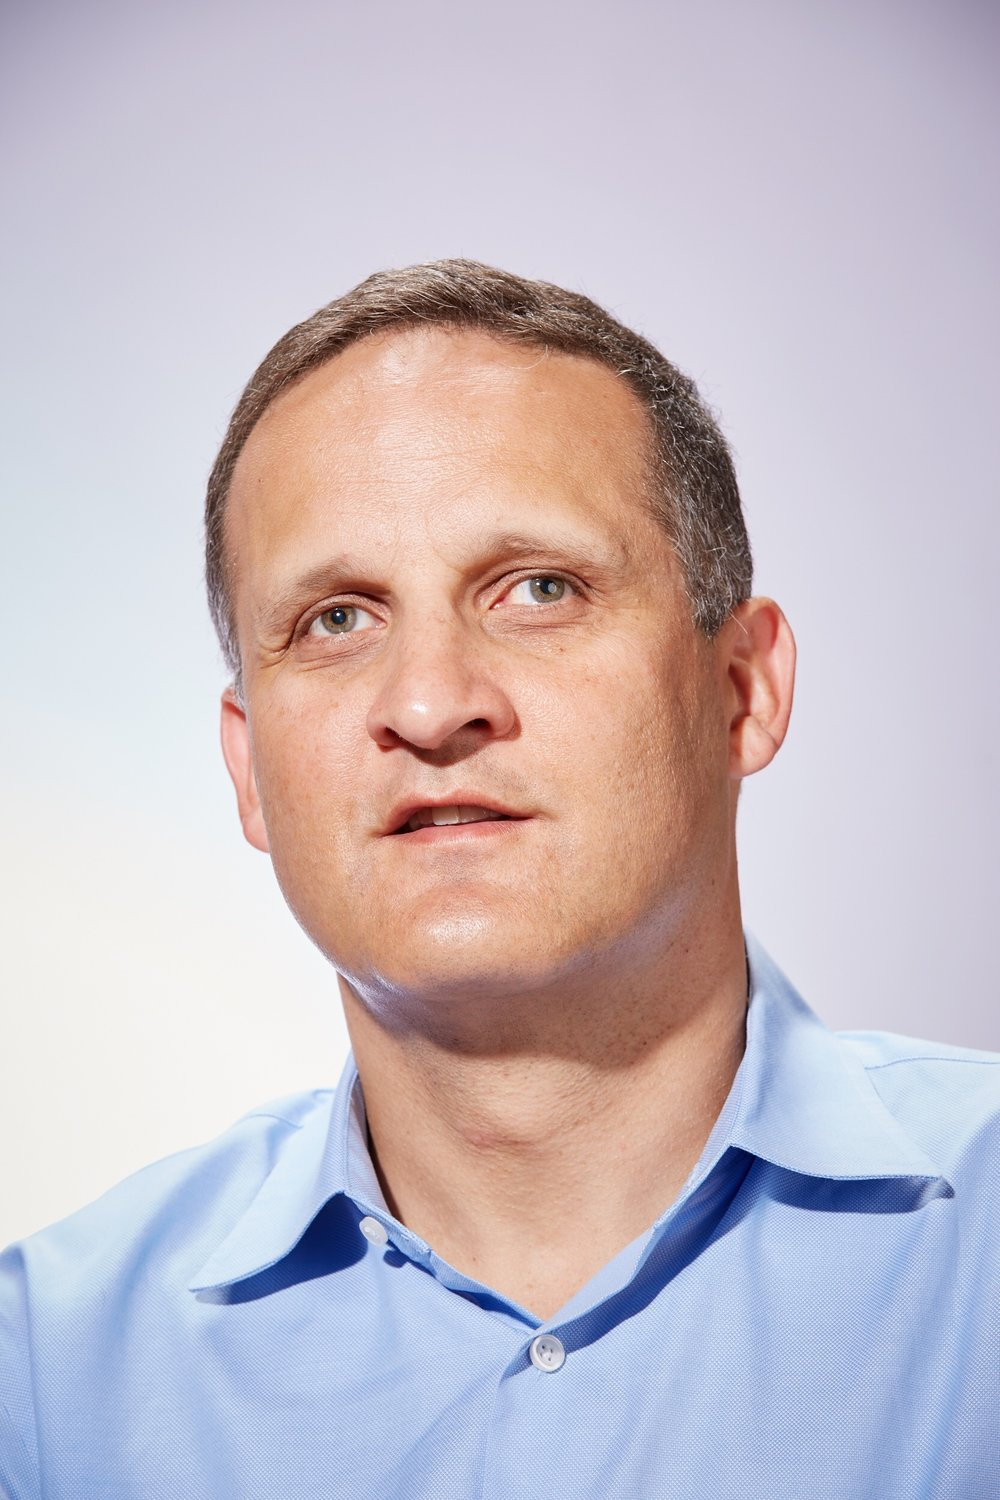 Adam Selipsky, CEO of Tableau Software. Photo by Michael Clinard.